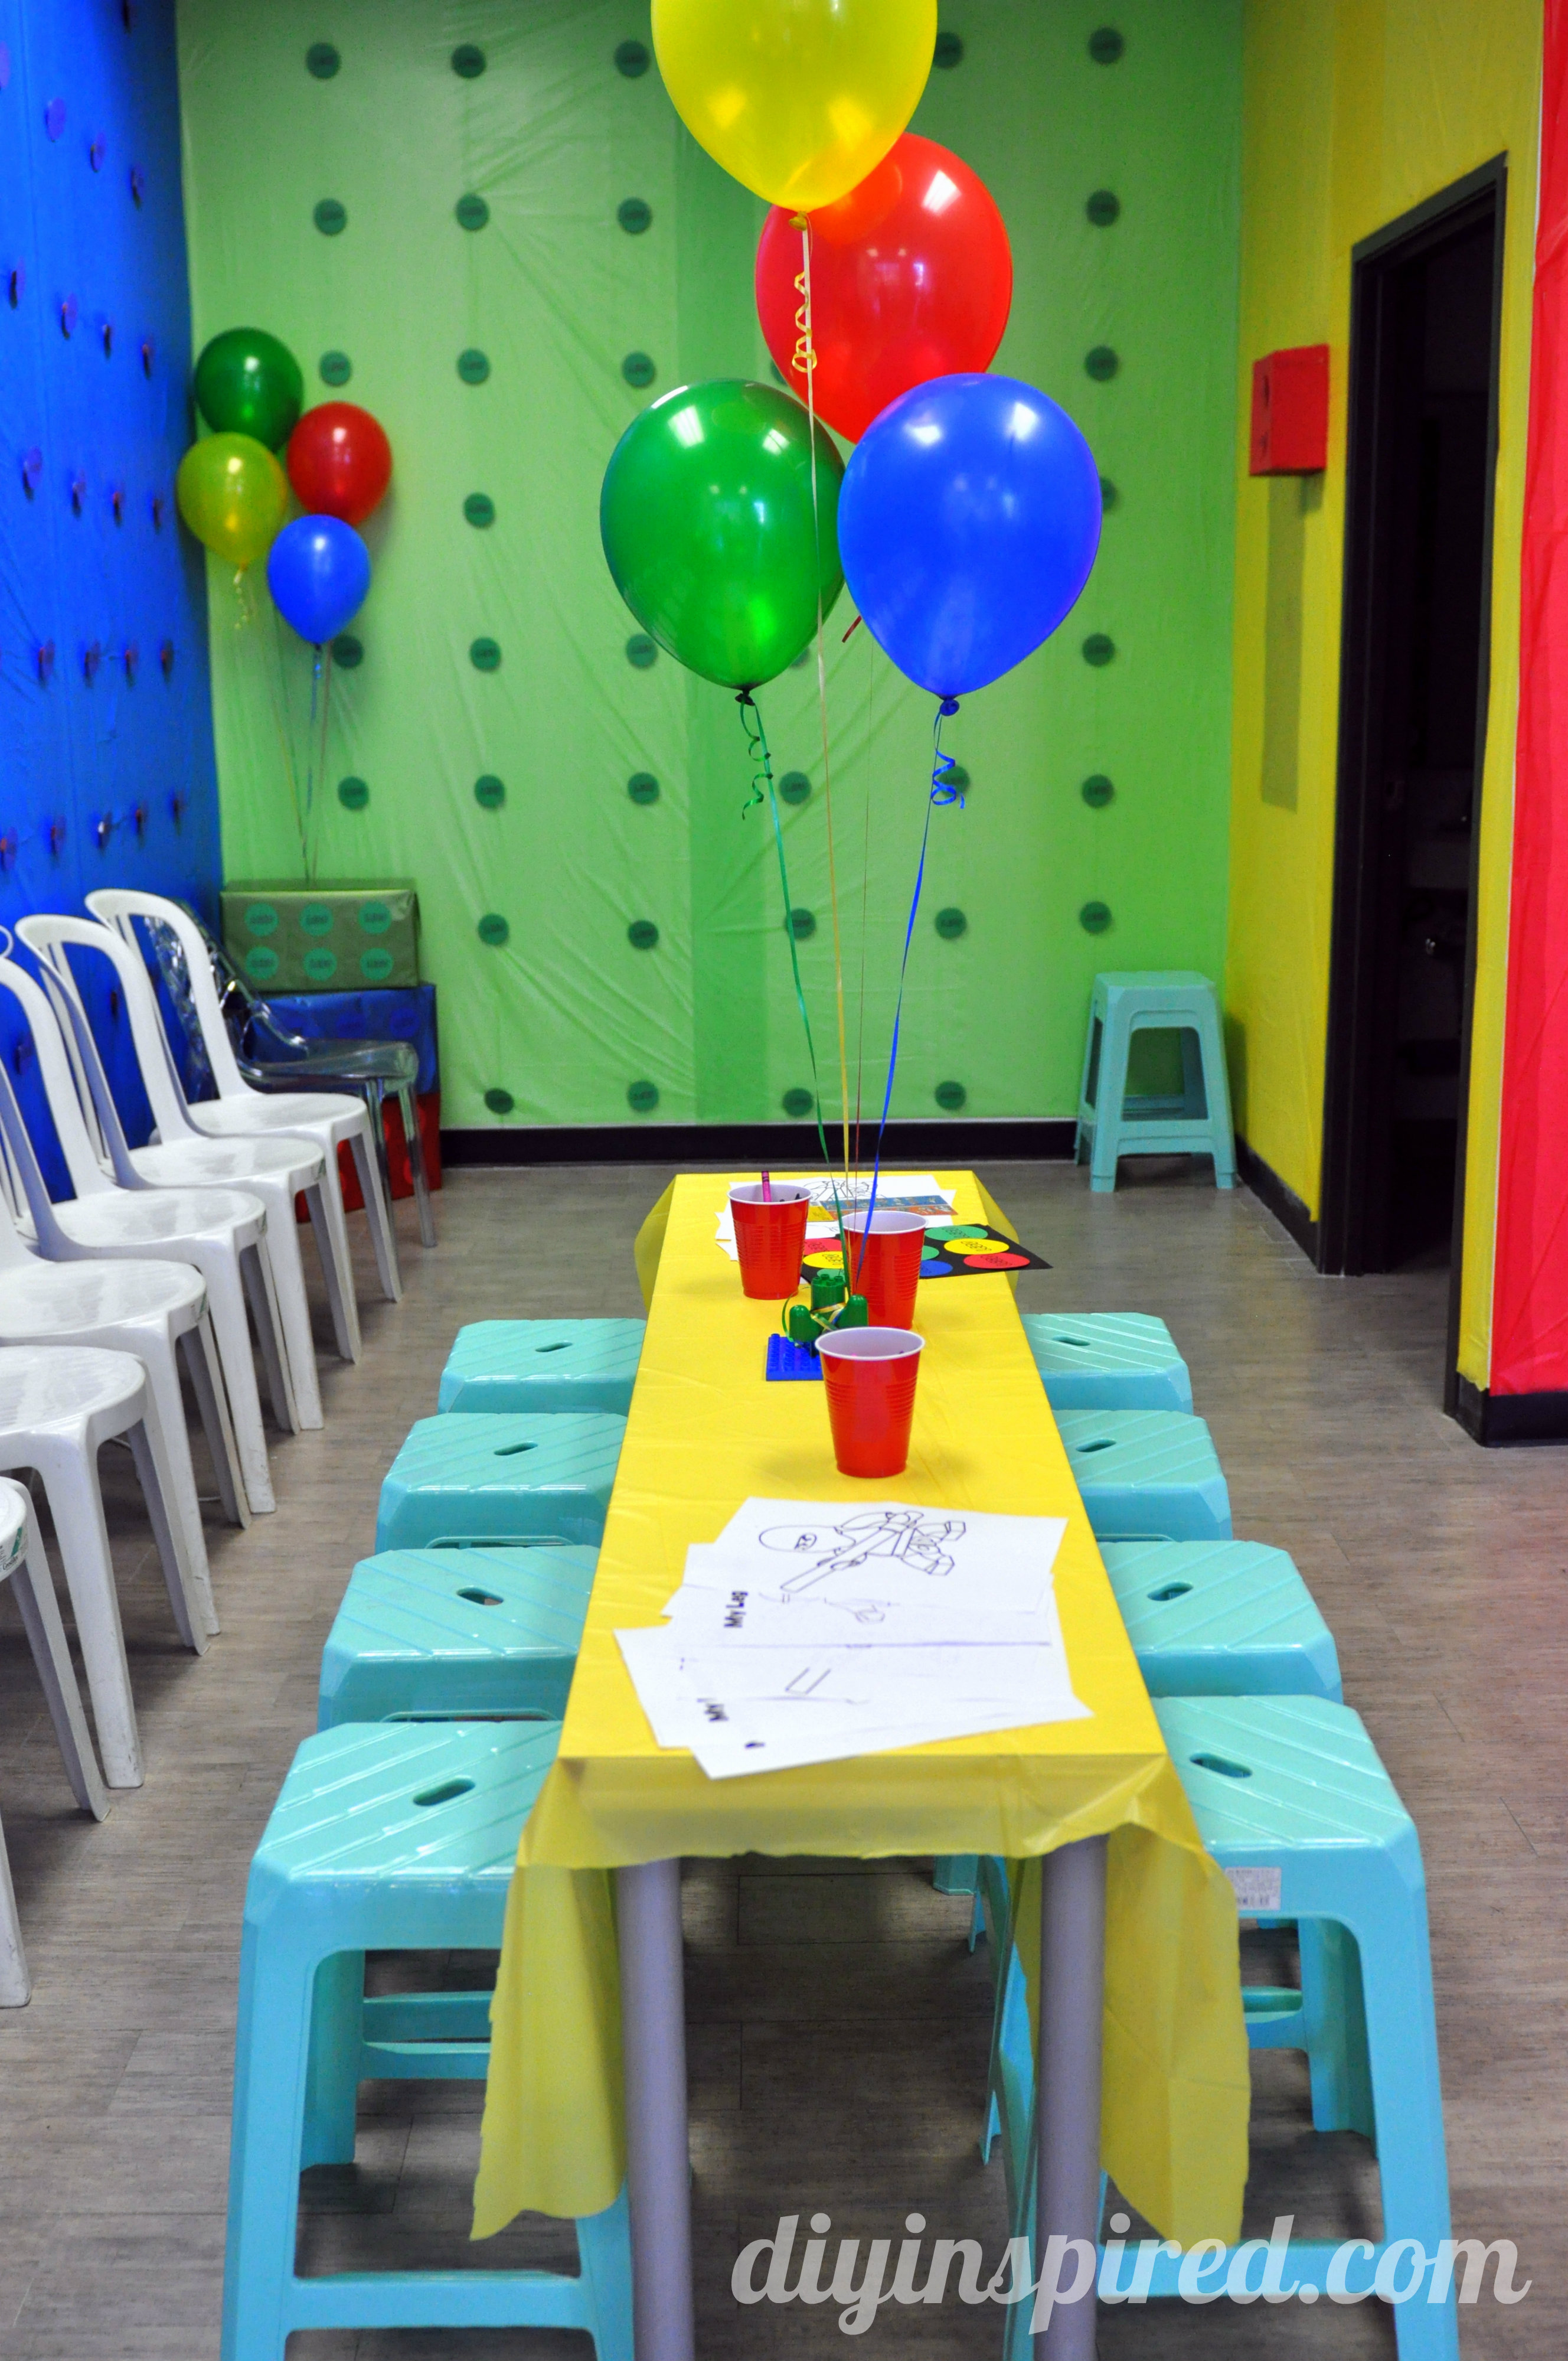 Lego Birthday Party - DIY Inspired